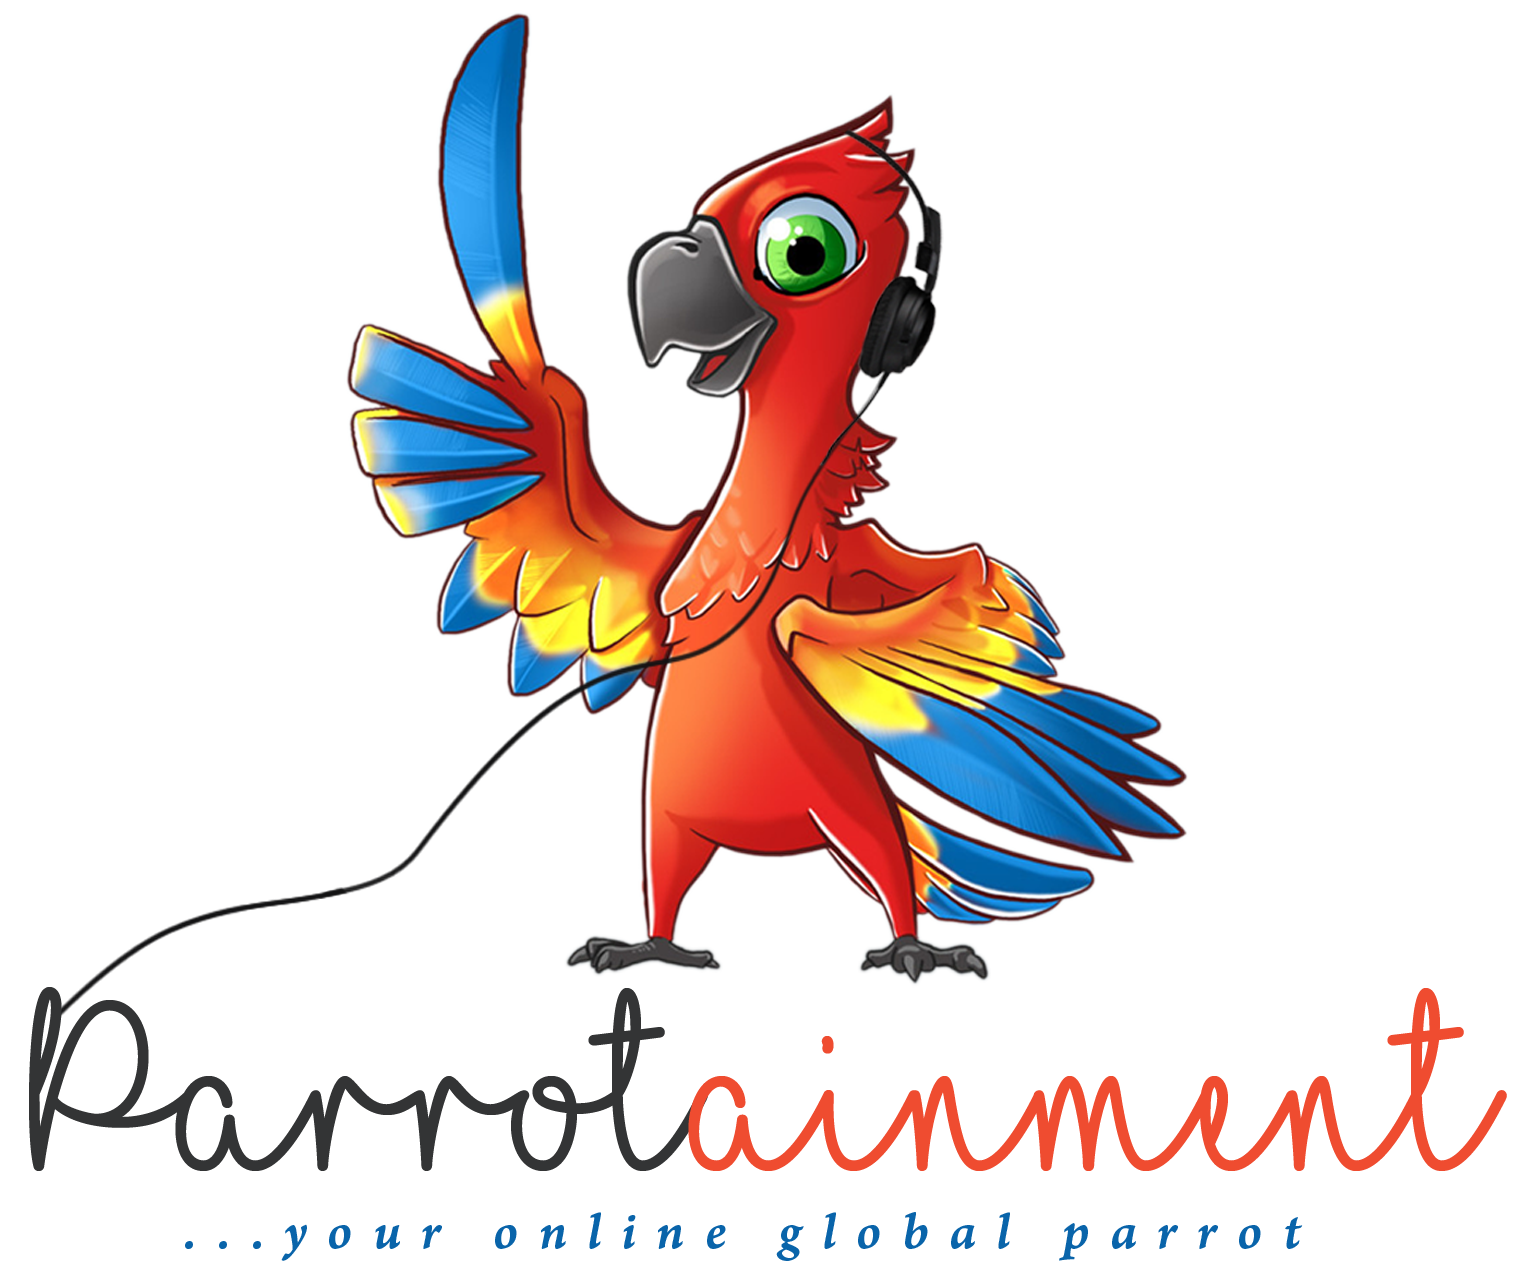 http://parrotainment.com/wp-content/uploads/2017/07/PARROTAINMENT-NEW-LOGO-copy.png